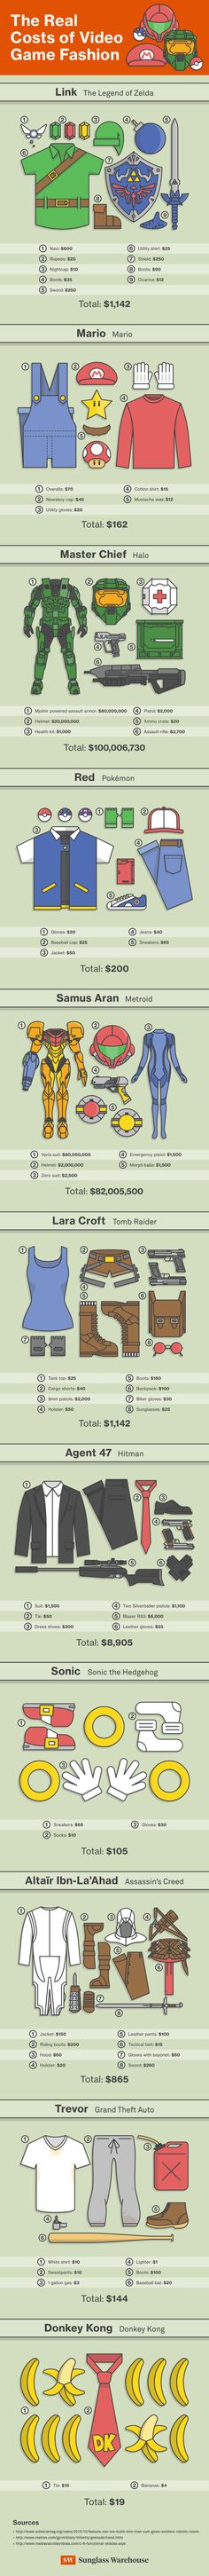 How Much Does Your Favorite Video Game Character's Outfit Cost?